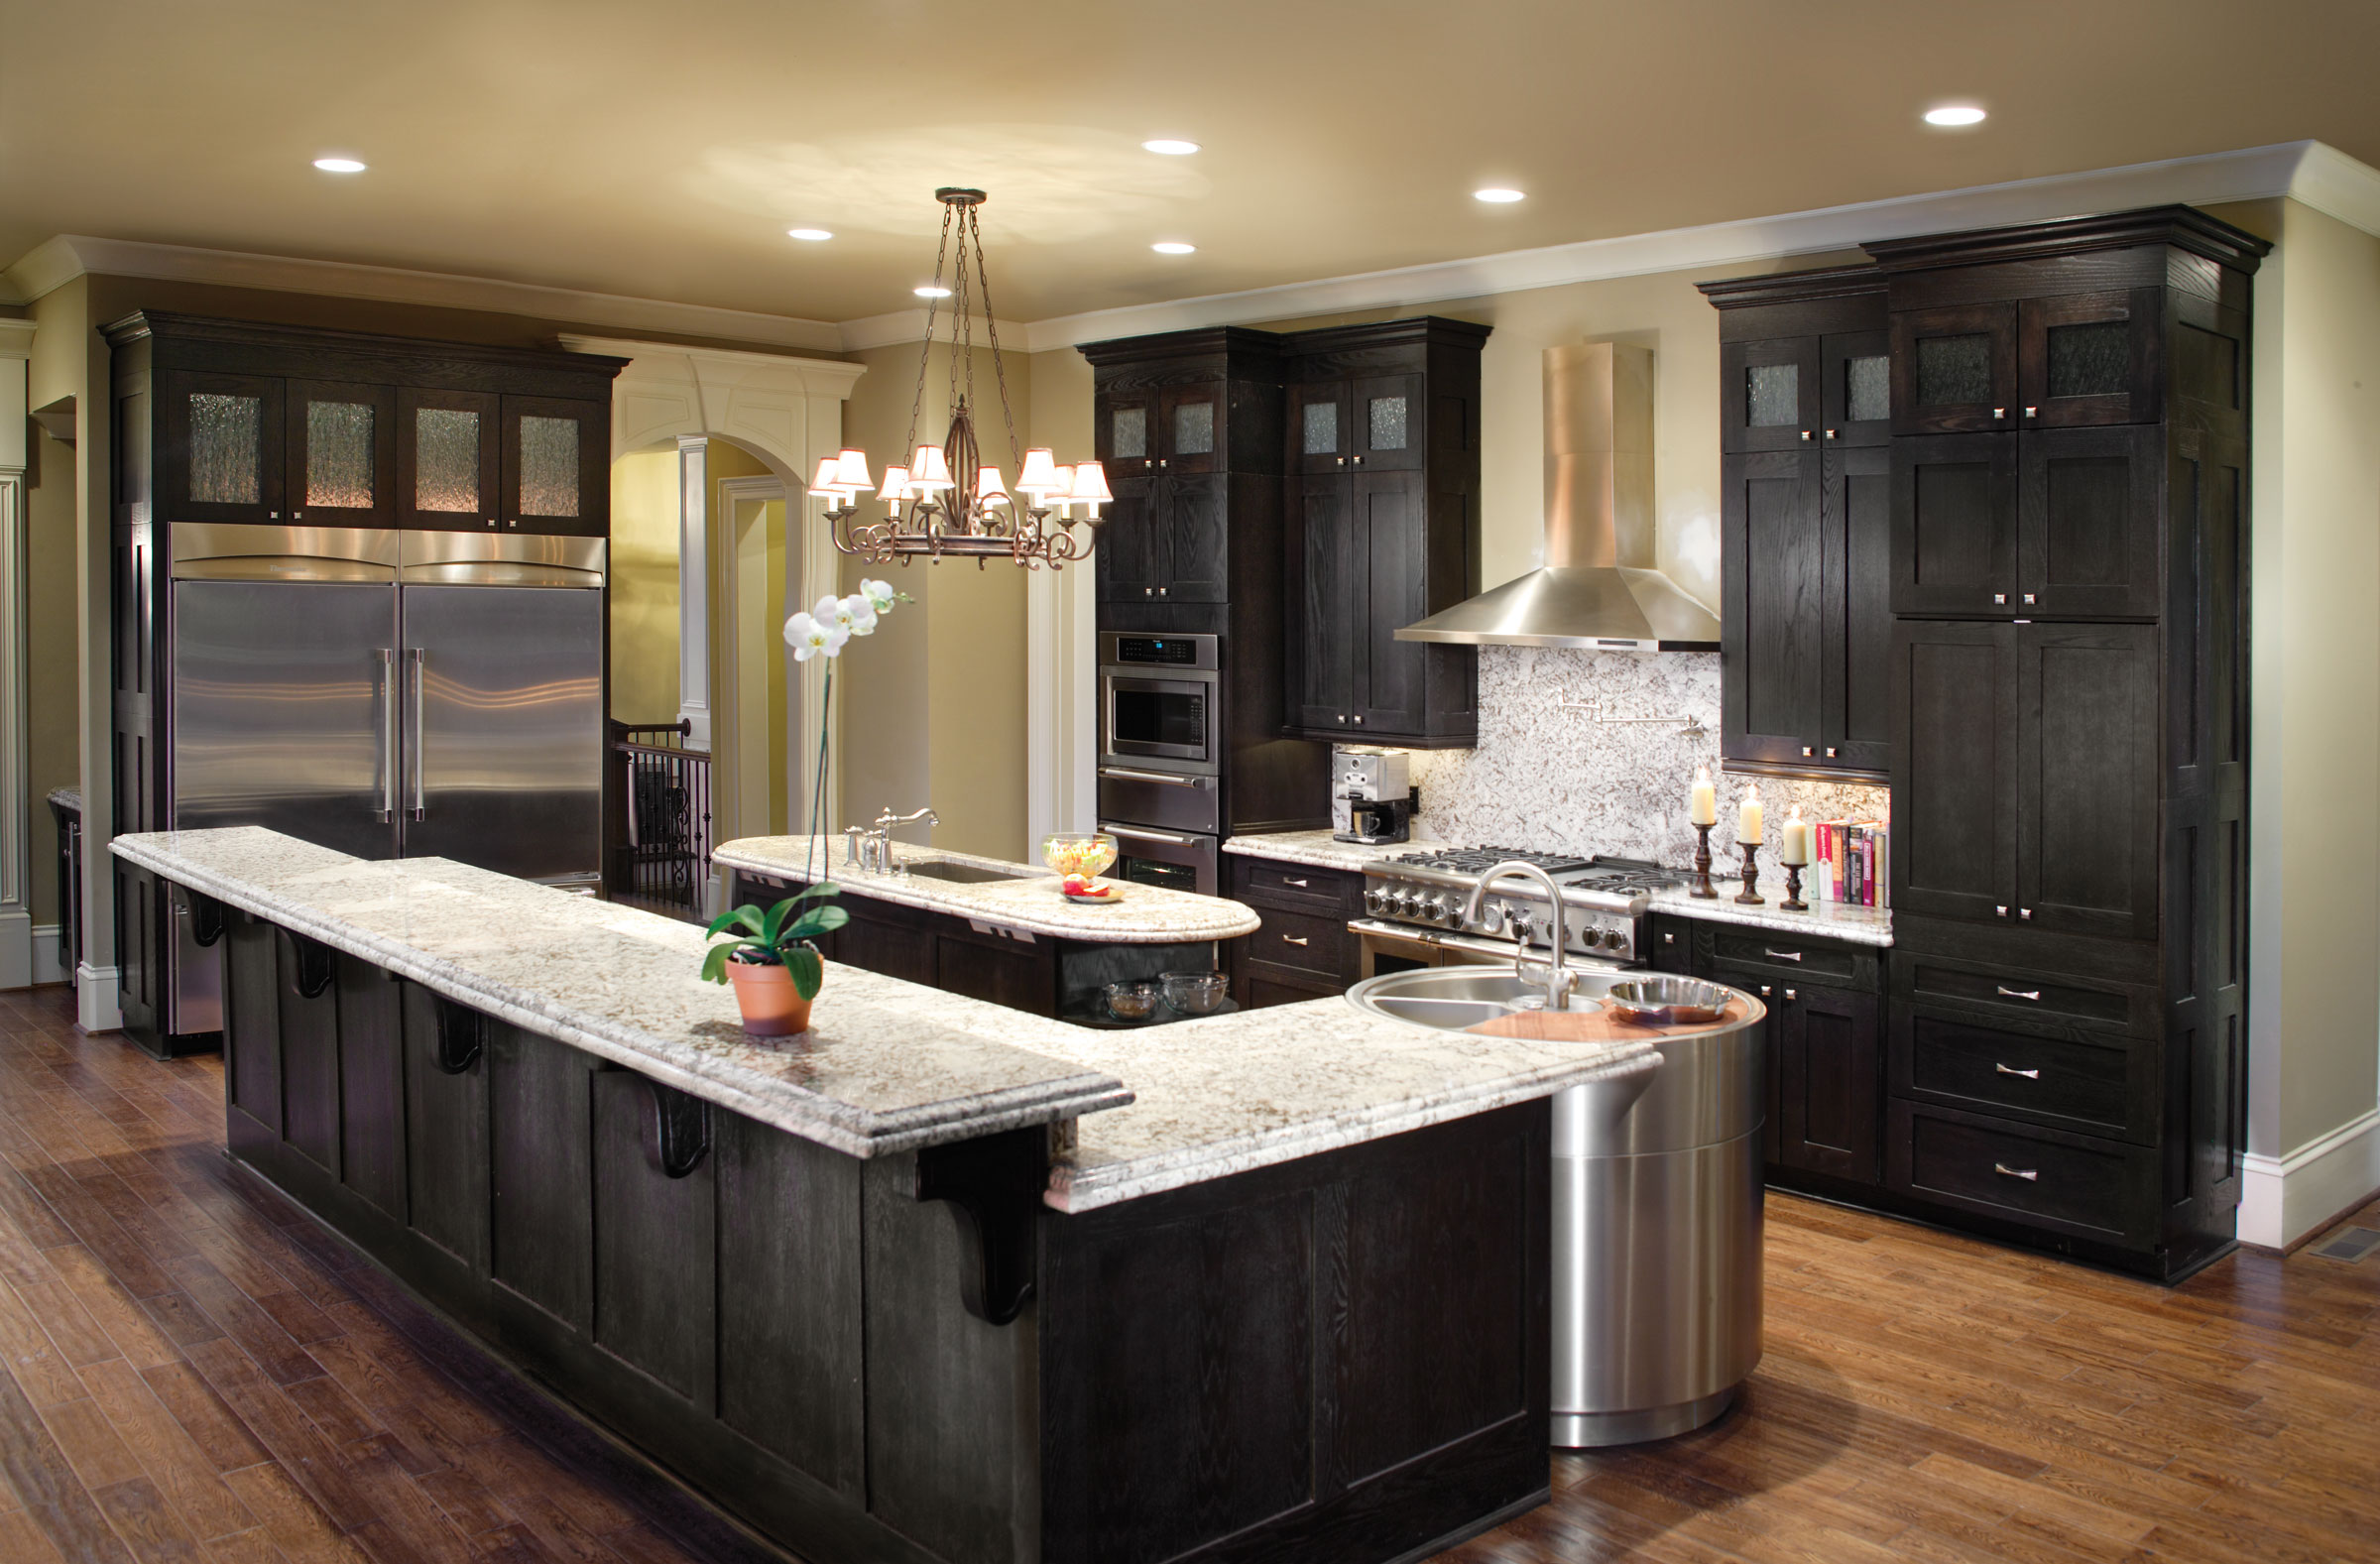 Custom Kitchen Cabinets custom kitchen & bathroom cabinets company in phoenix, az